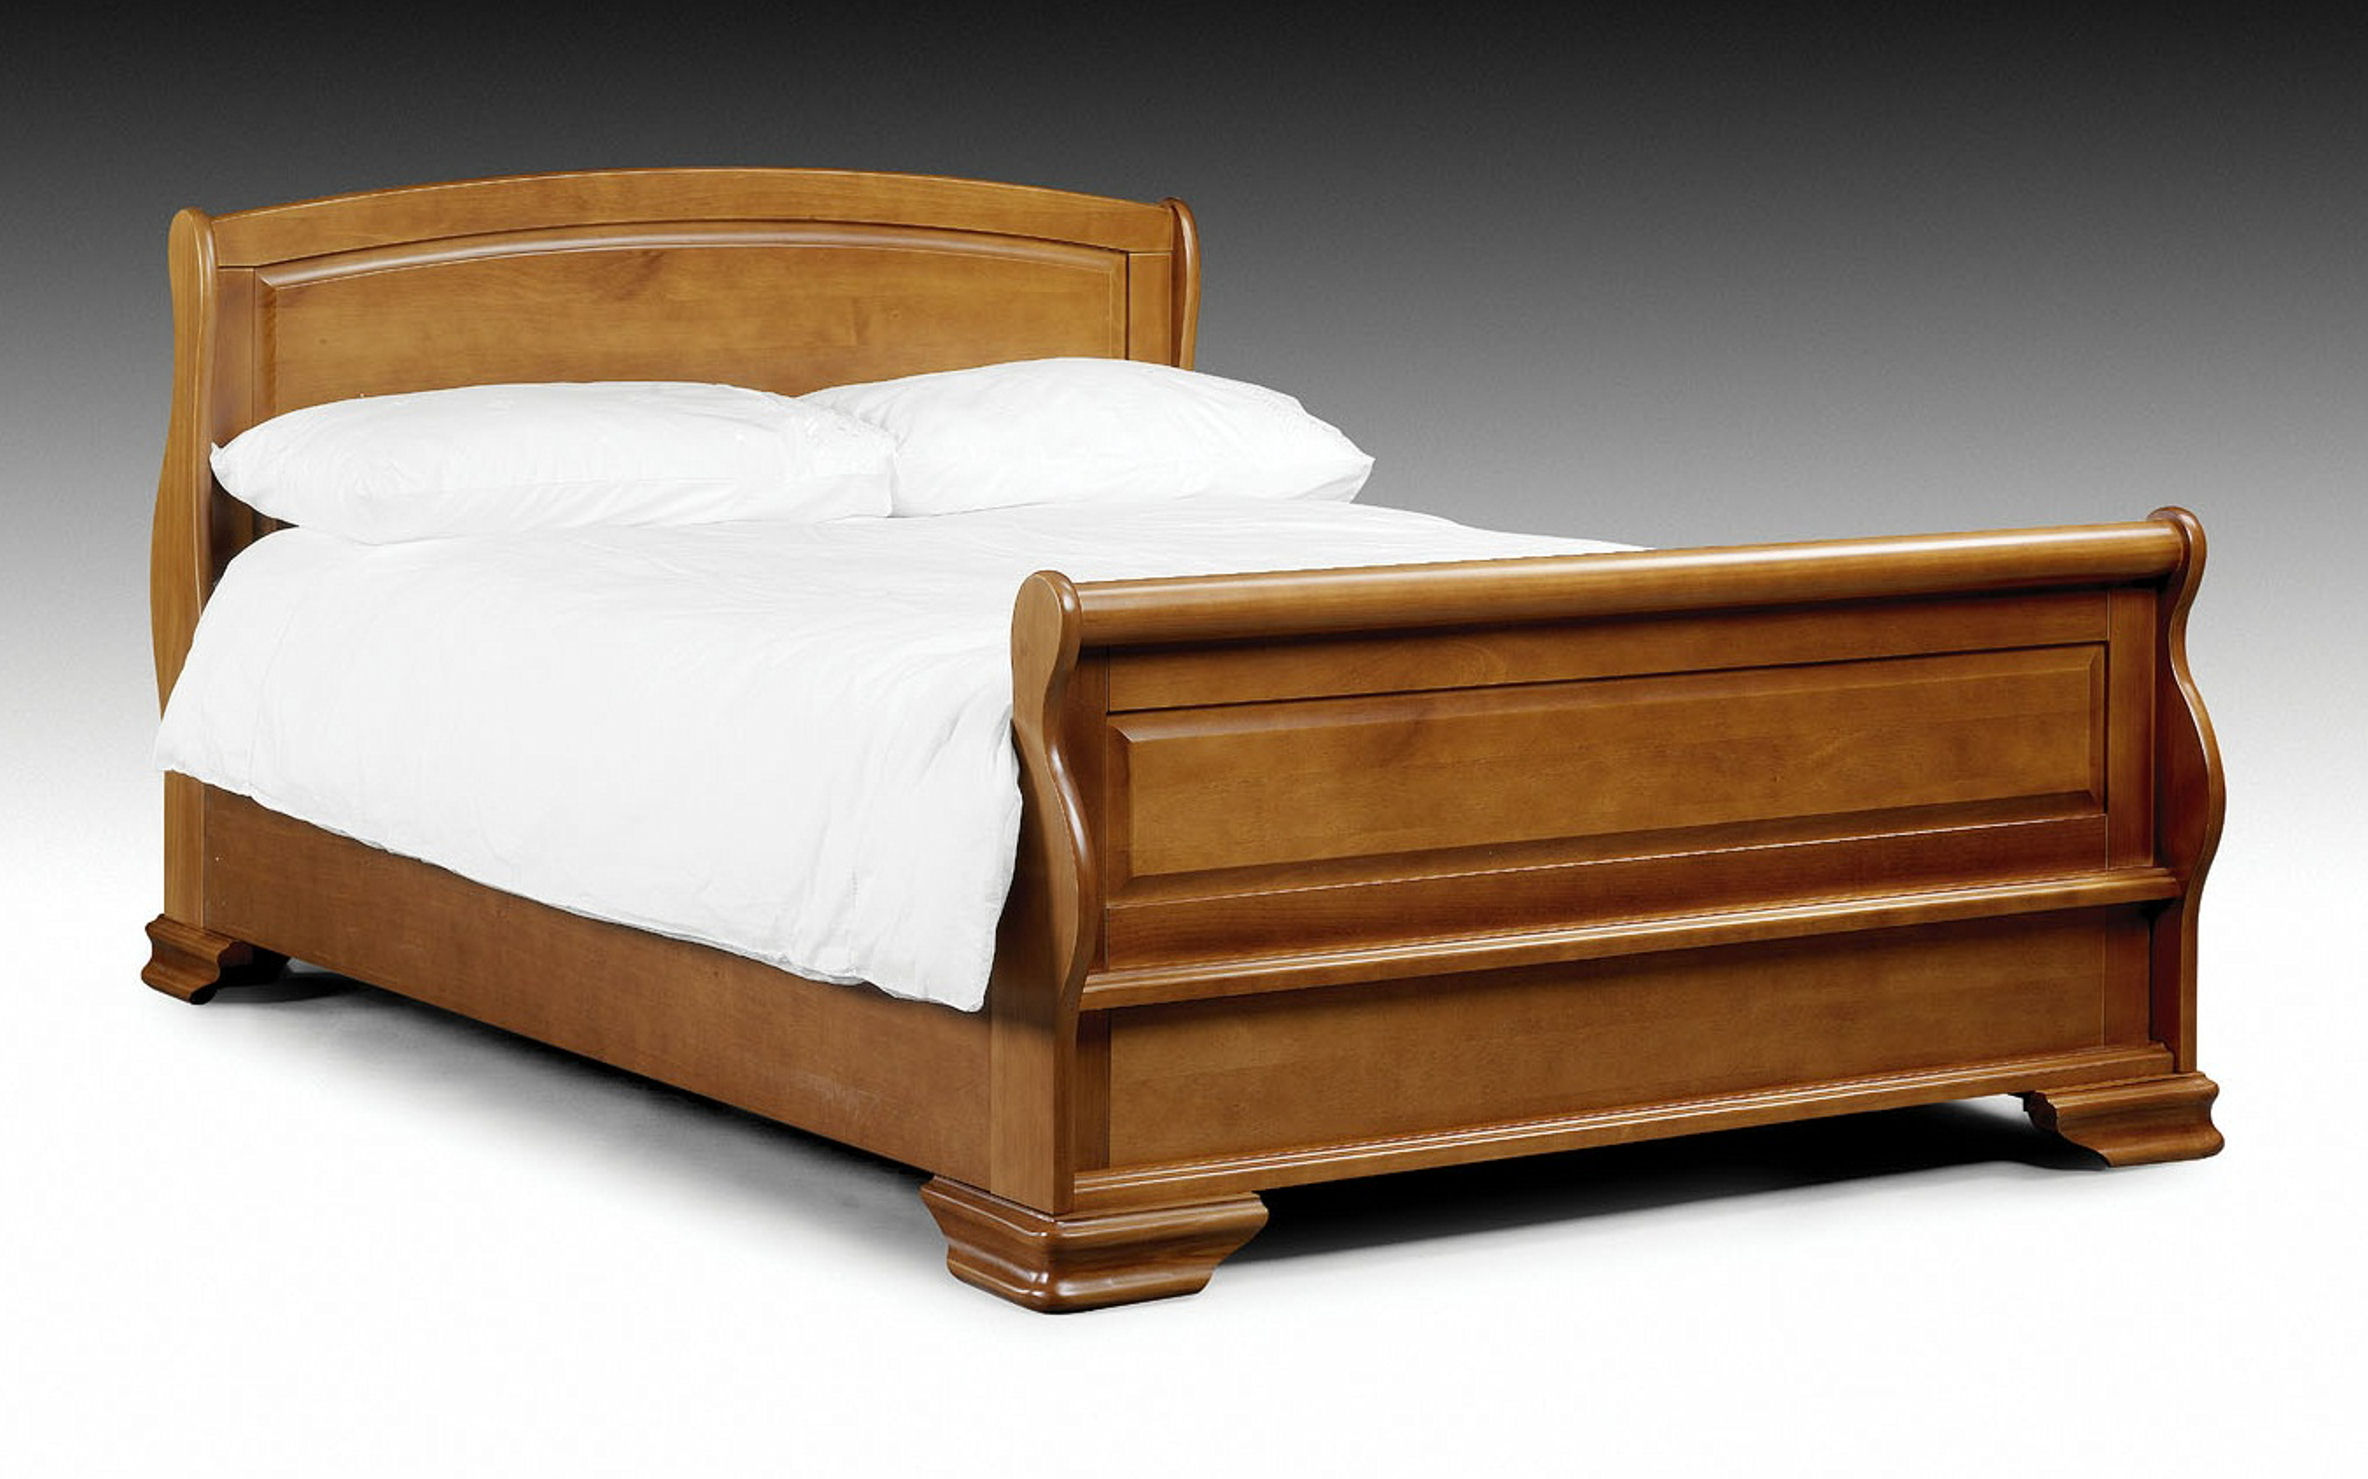 Marvelous photograph of Brown Solid Wooden Bed with natural lacquer spray Home Furniture with #754118 color and 2368x1479 pixels